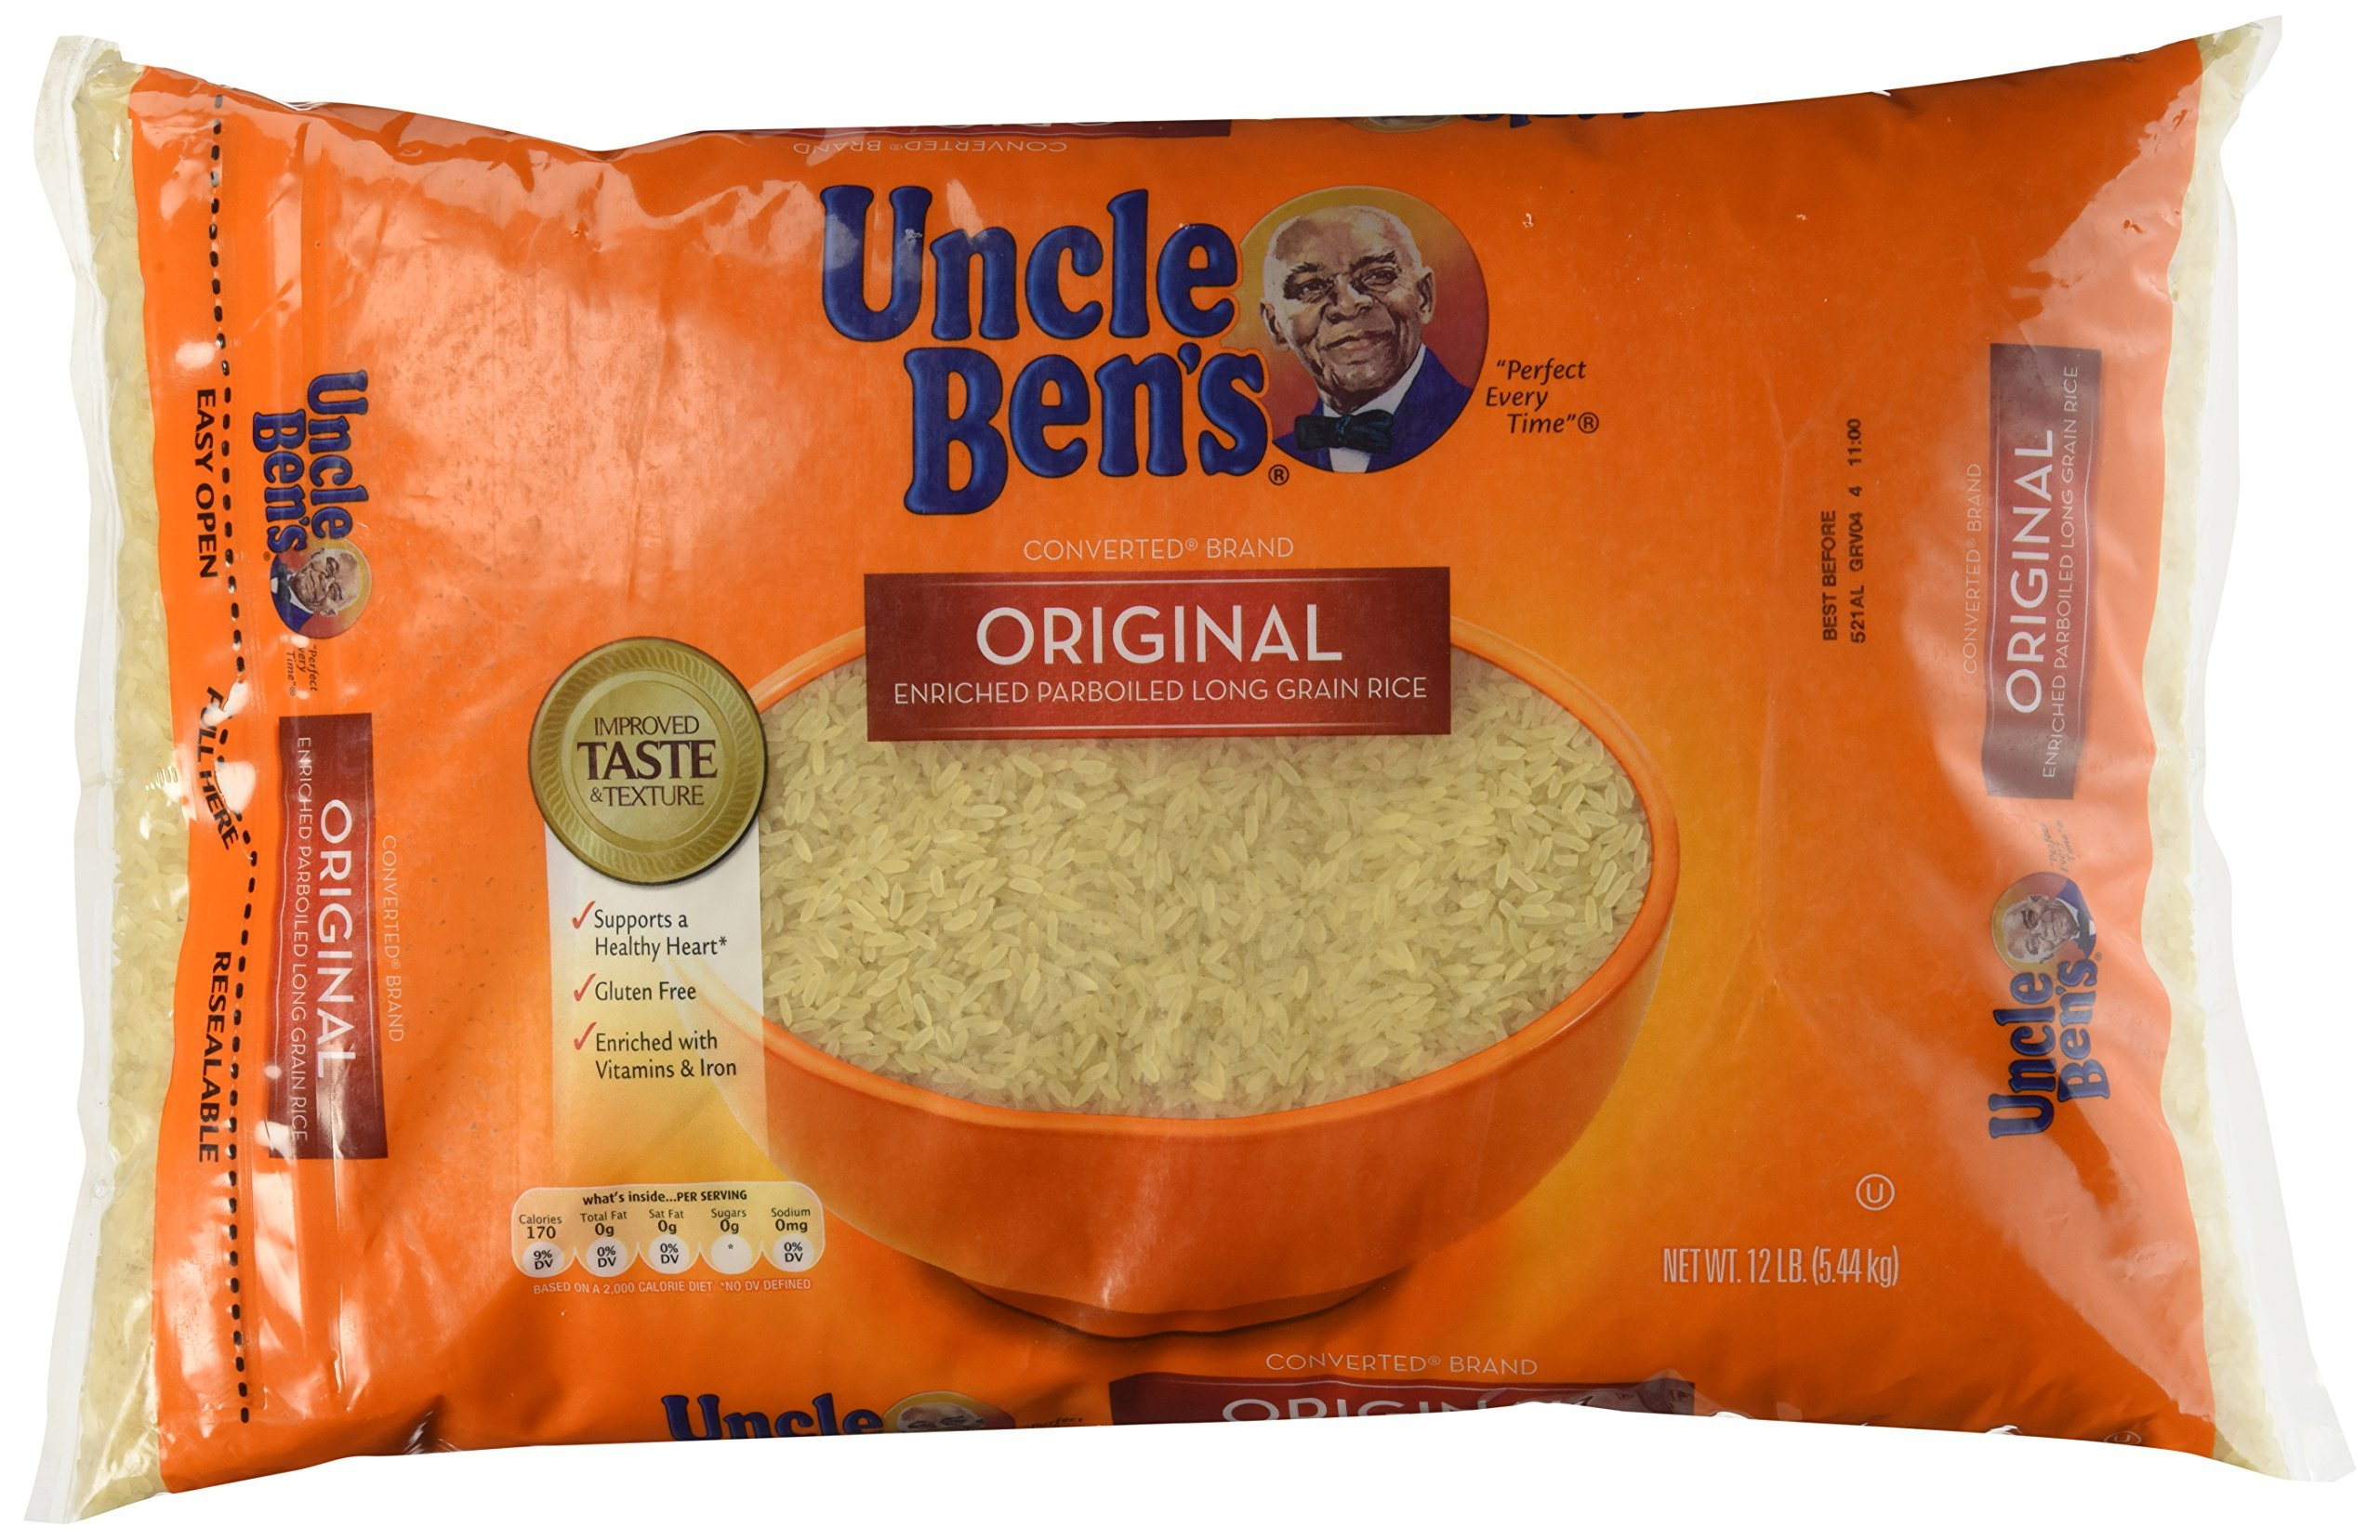 uncle bens c Original Long Grain Rice, 12 lb. Bag